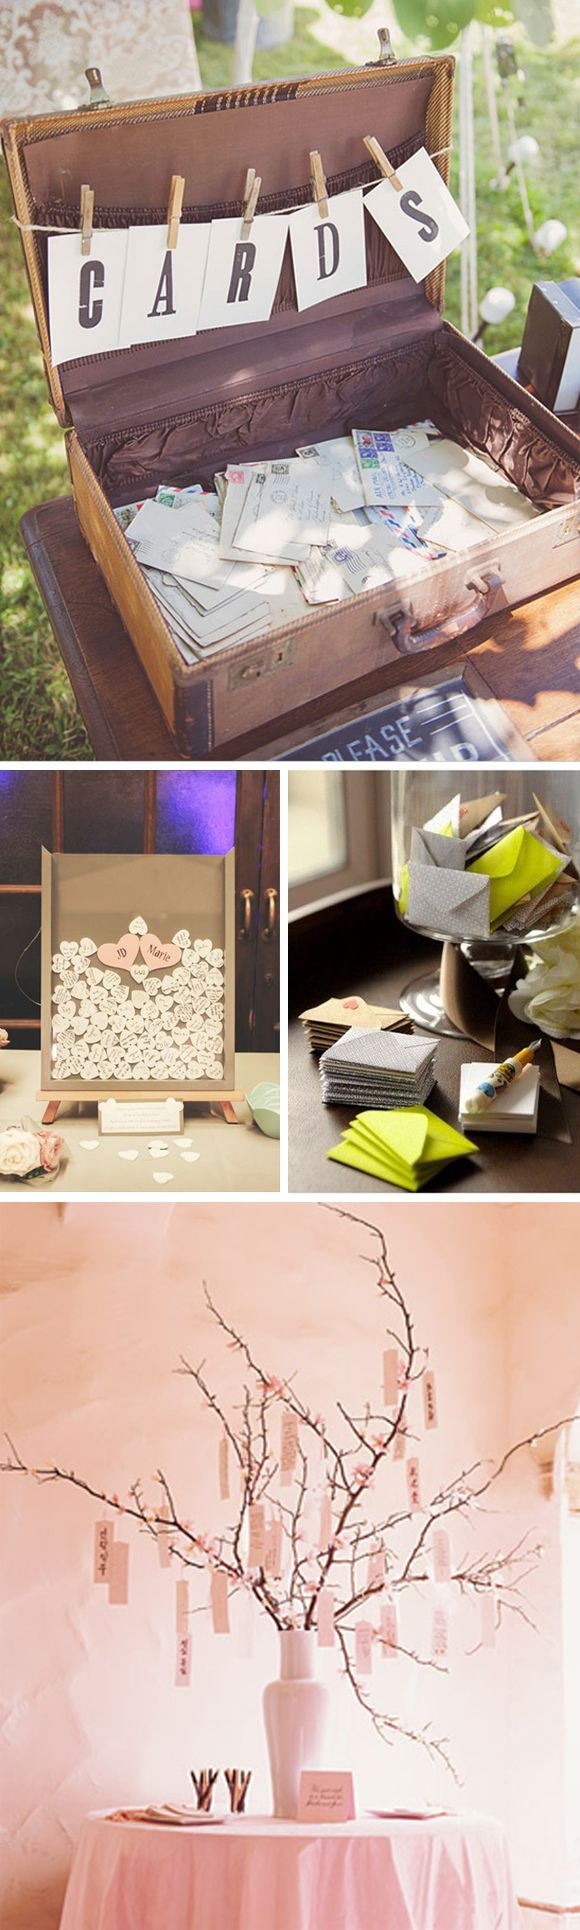 Libros de firmas originales en las bodas #weddingideas #weddingdecor #wedding #librofirmas